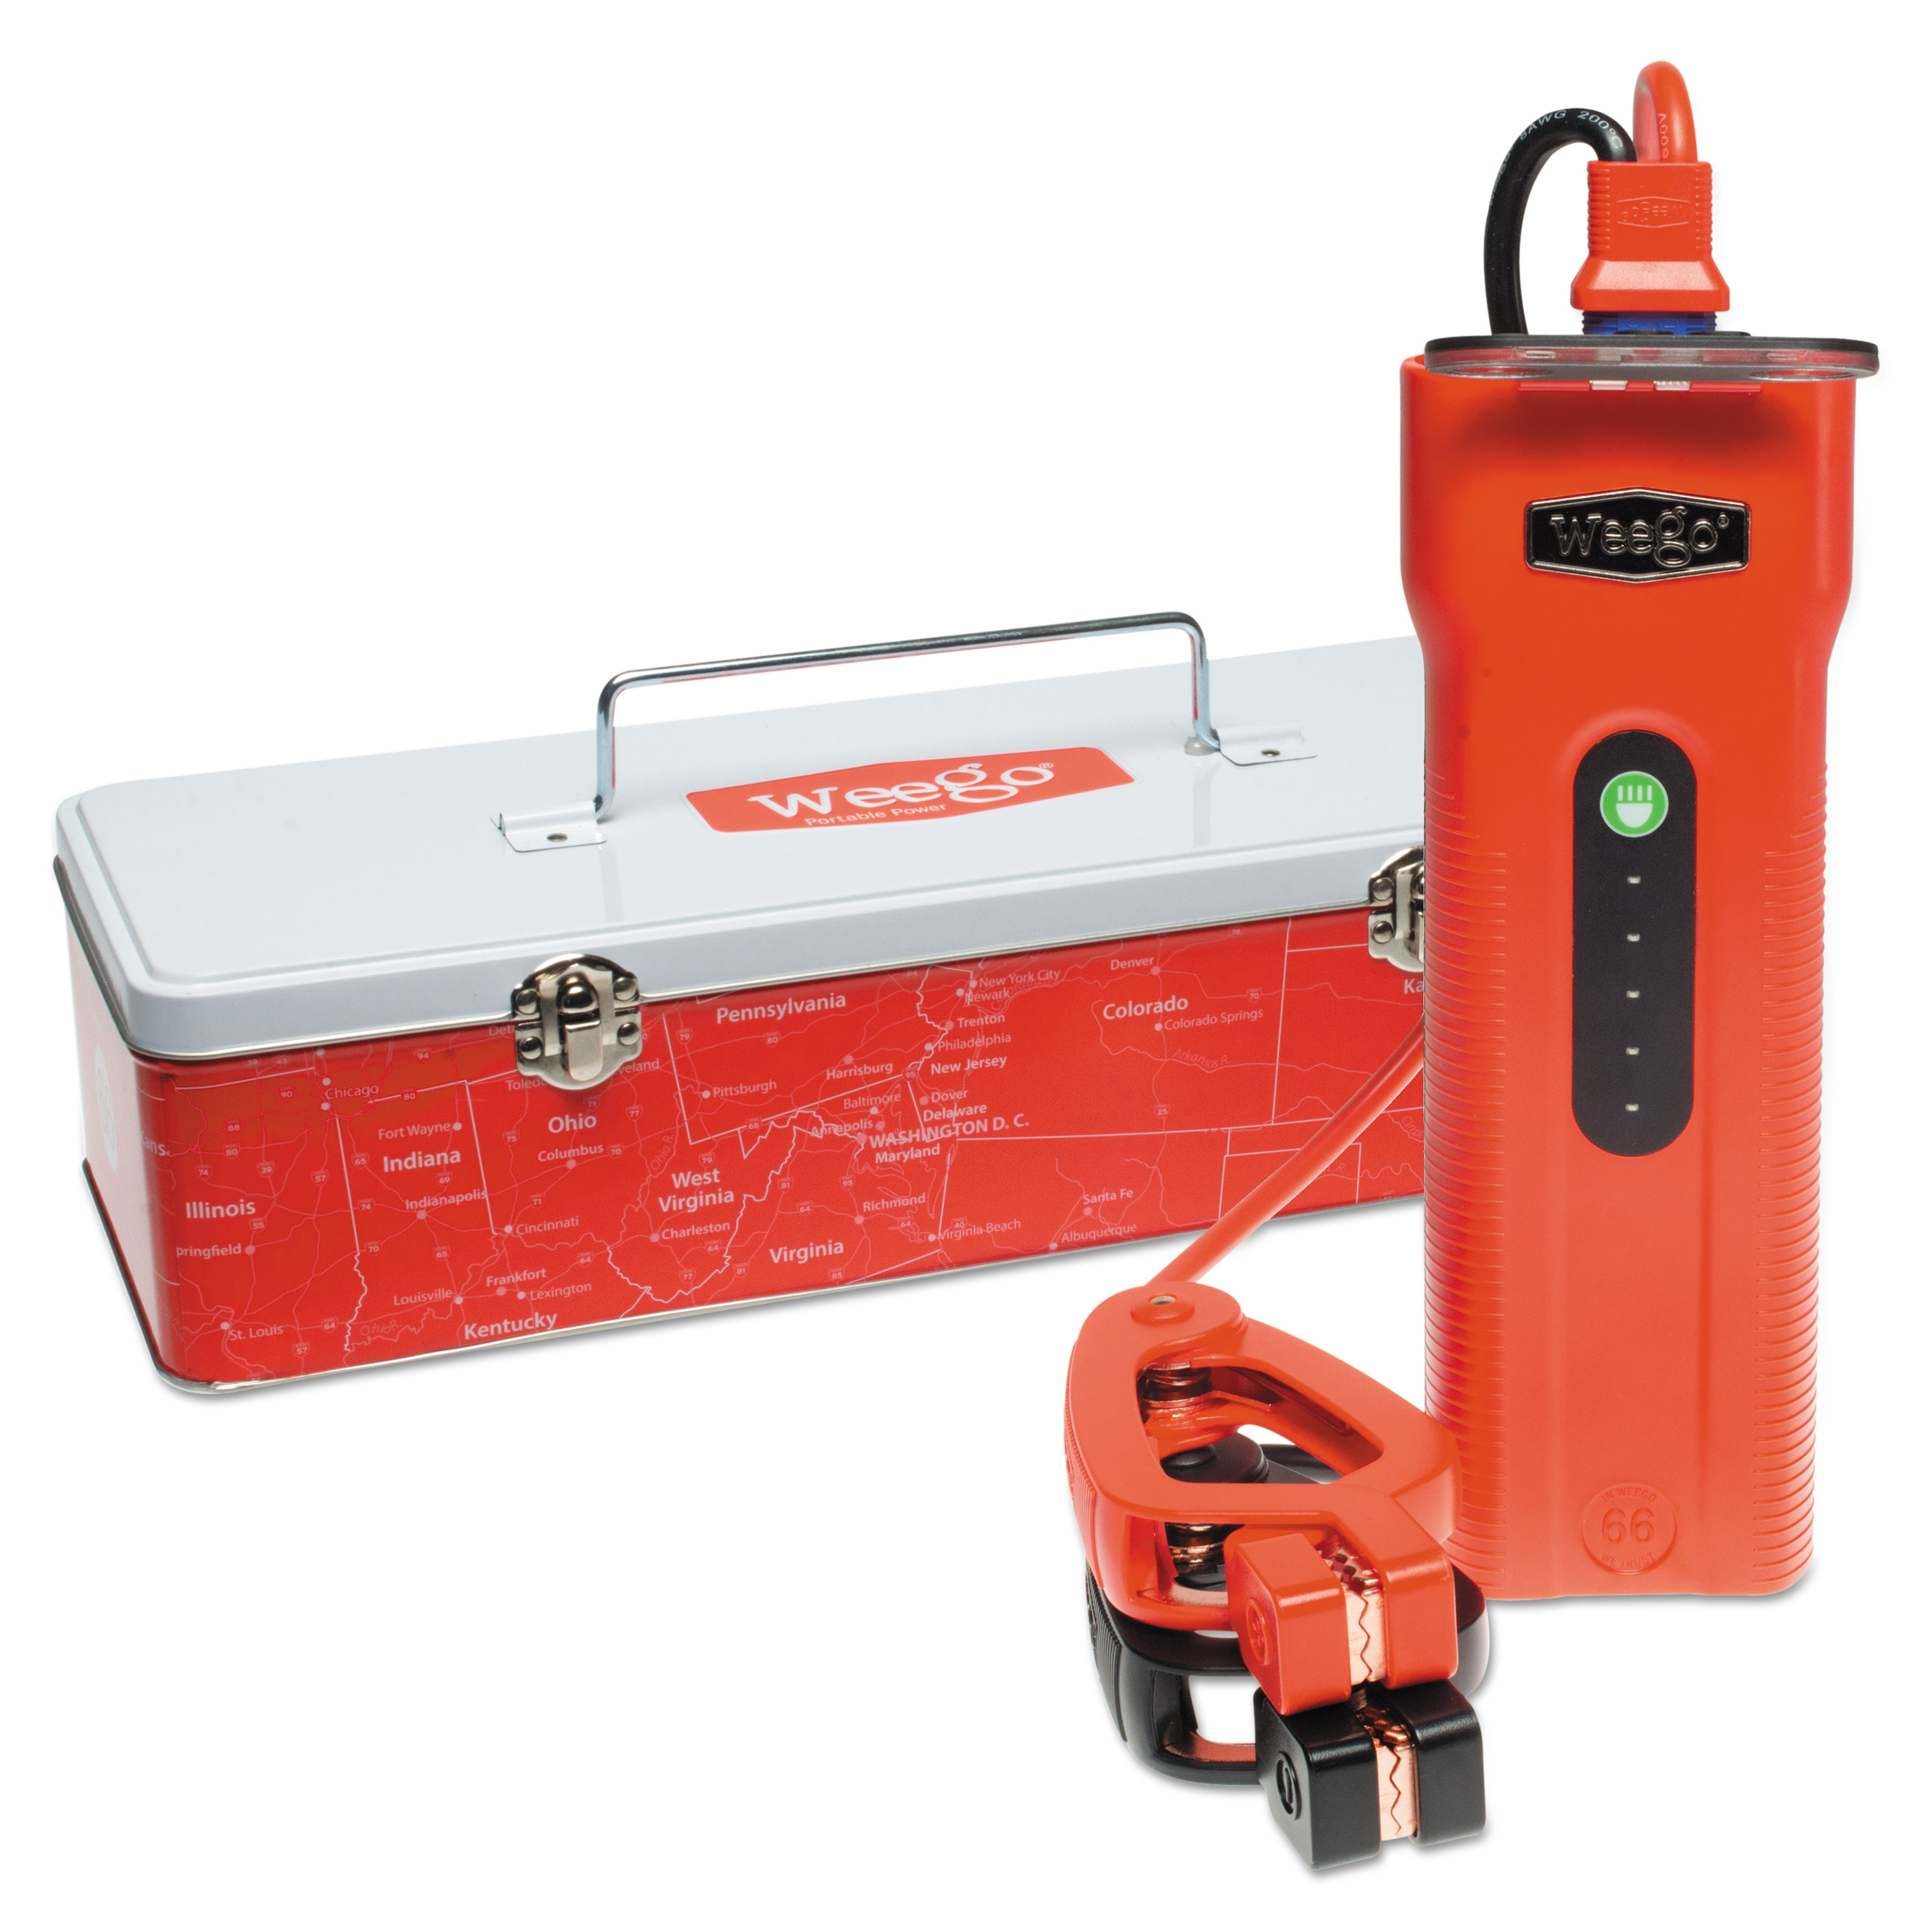 Weego Premium Jump Starters, 600A by Weego